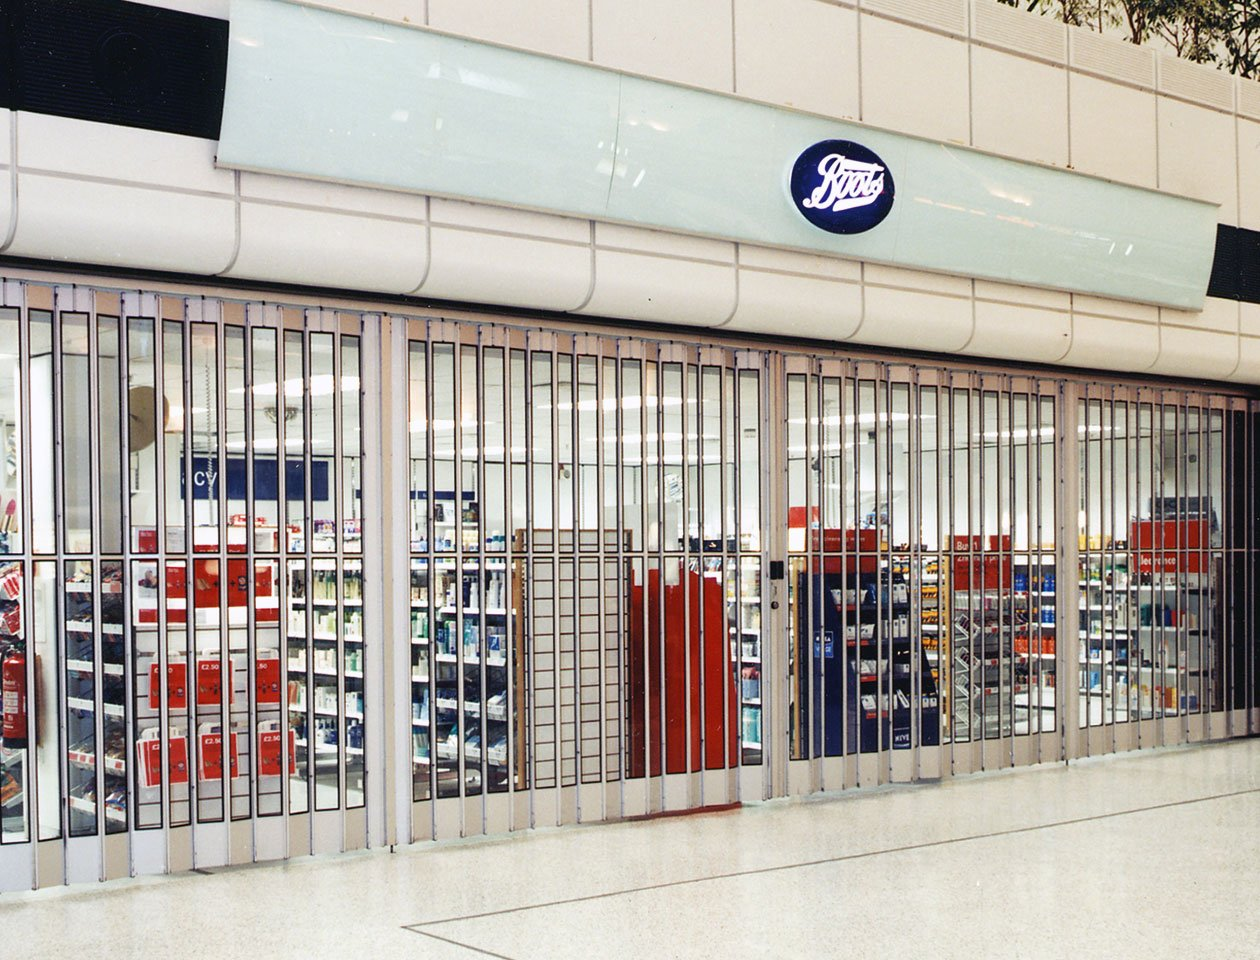 aluminium sliding shutters used by Boots pharmacy